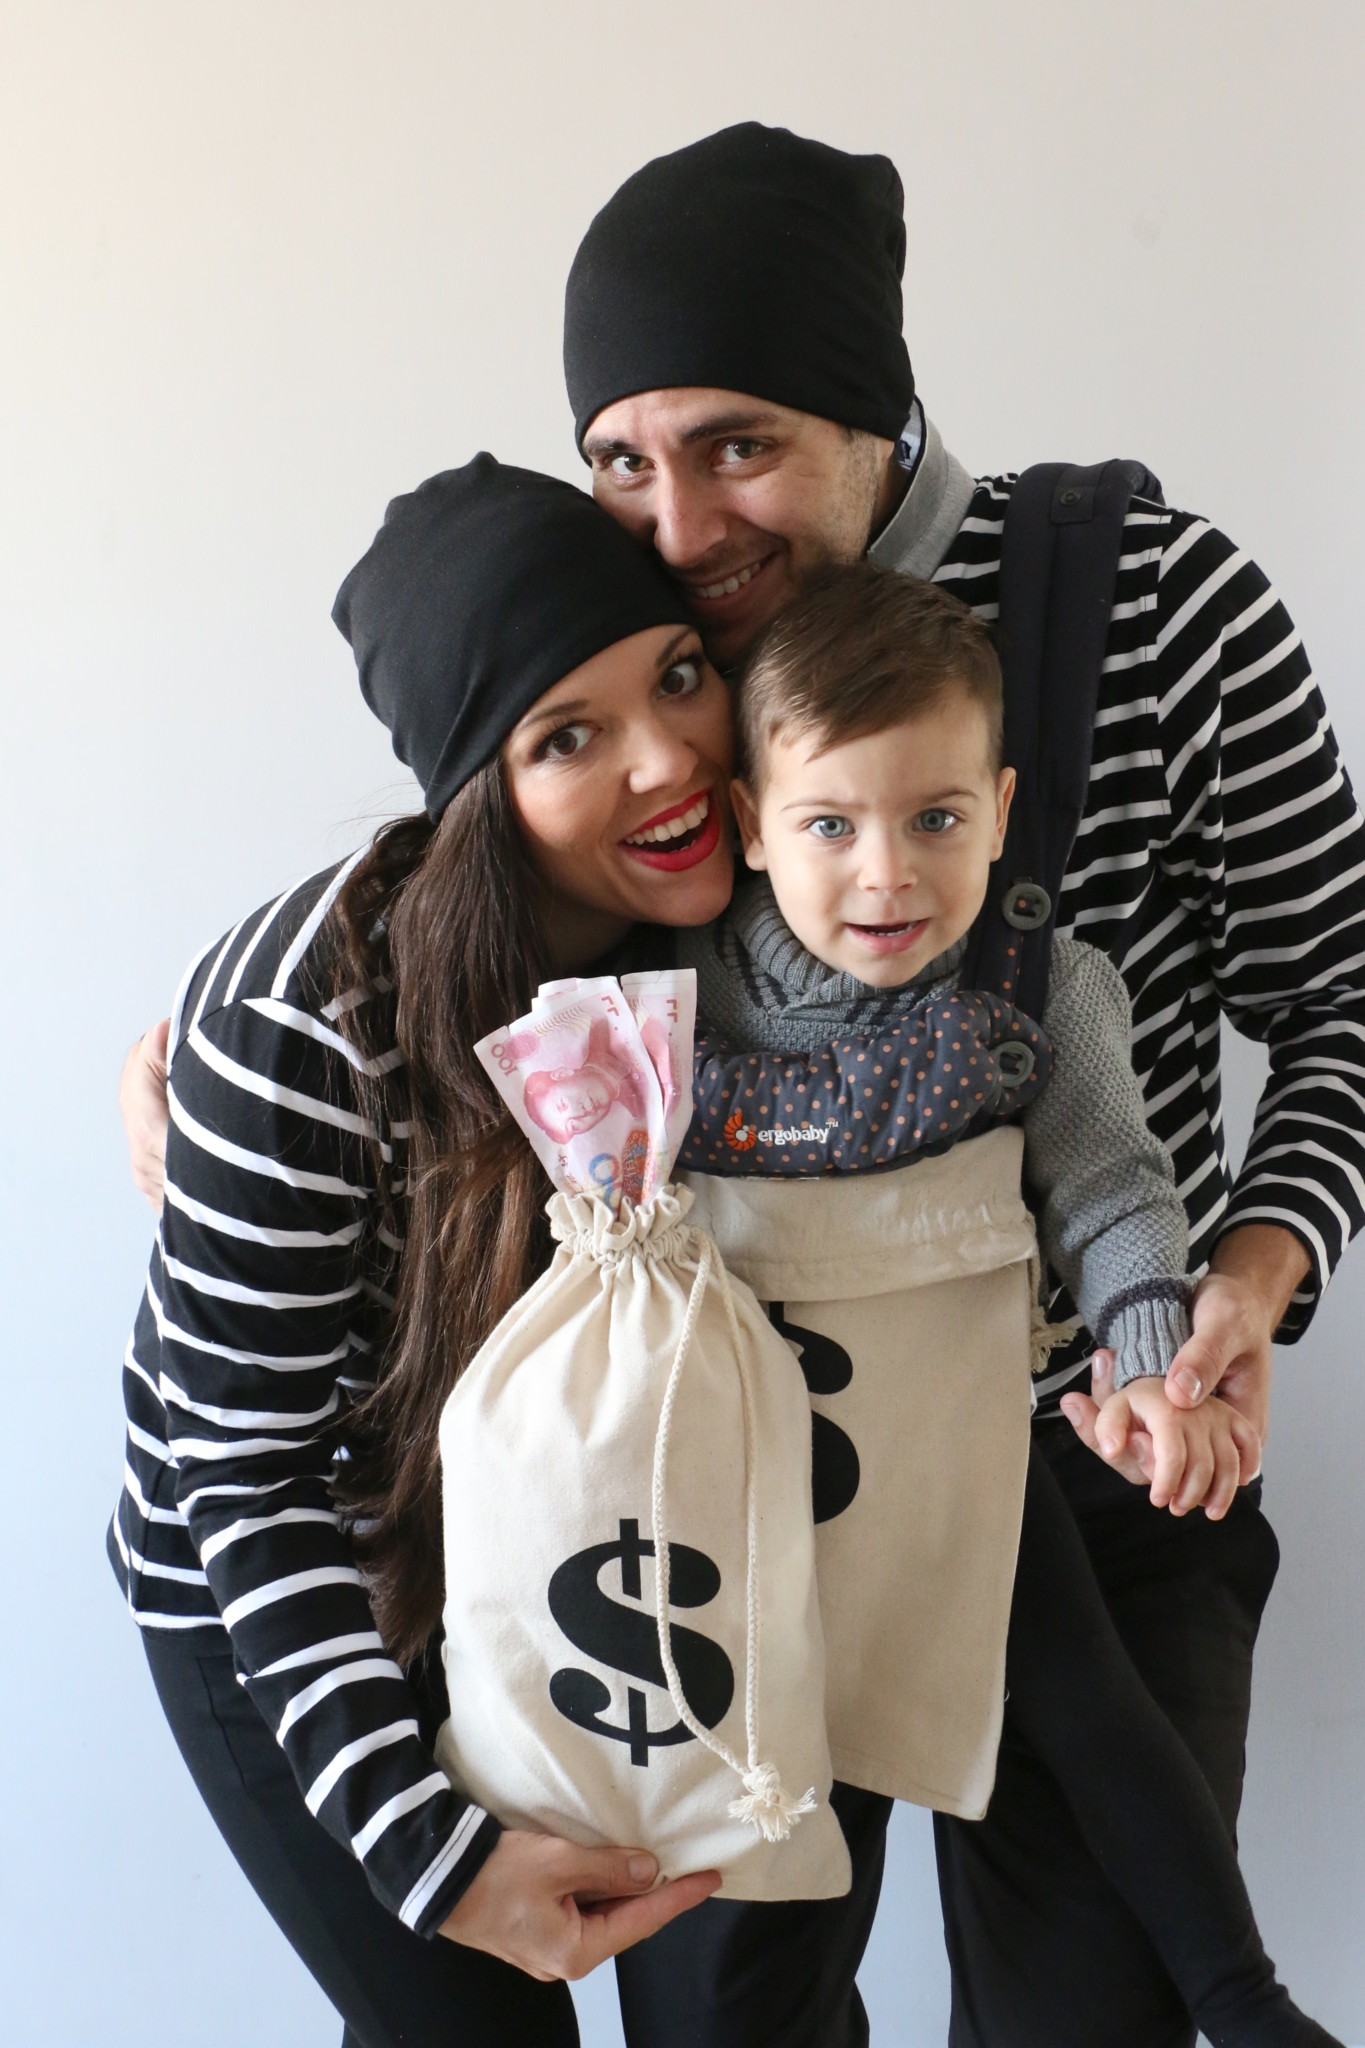 Diy Bank Robber Shirt Diy Family Costume Bank Robbers Traveling With Jc